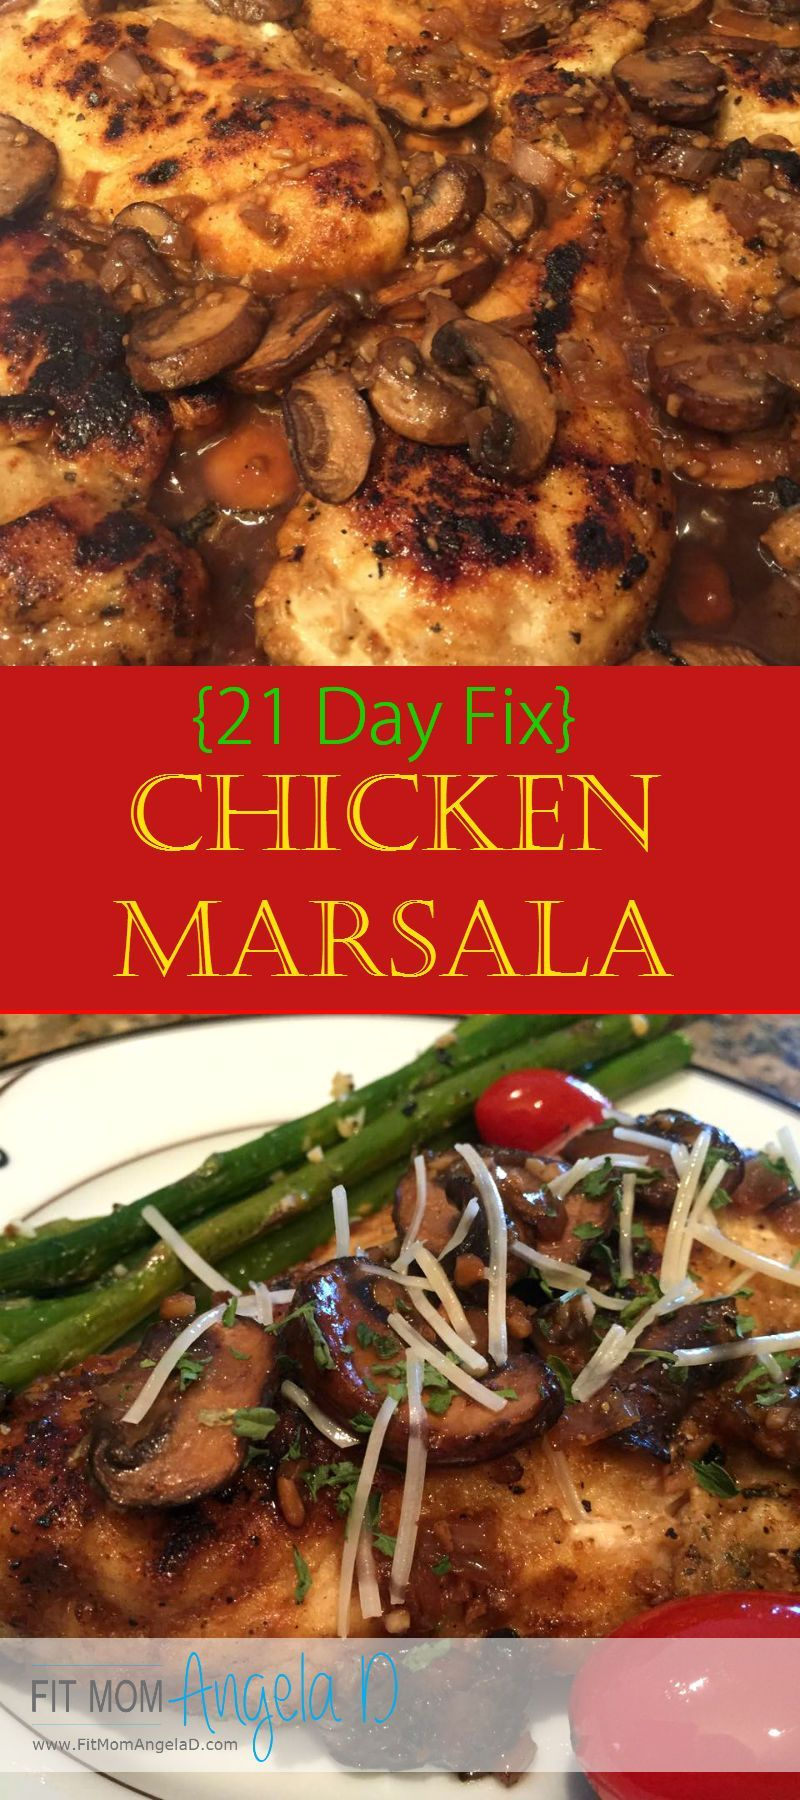 21 Day Fix Chicken Marsala Day Fix Chicken Marsala   This meal was SO good - my husband and I both loved it and my house smelled AMAZING!   Healthy Dinner   Clean Eats   21 Day Fix Approved  